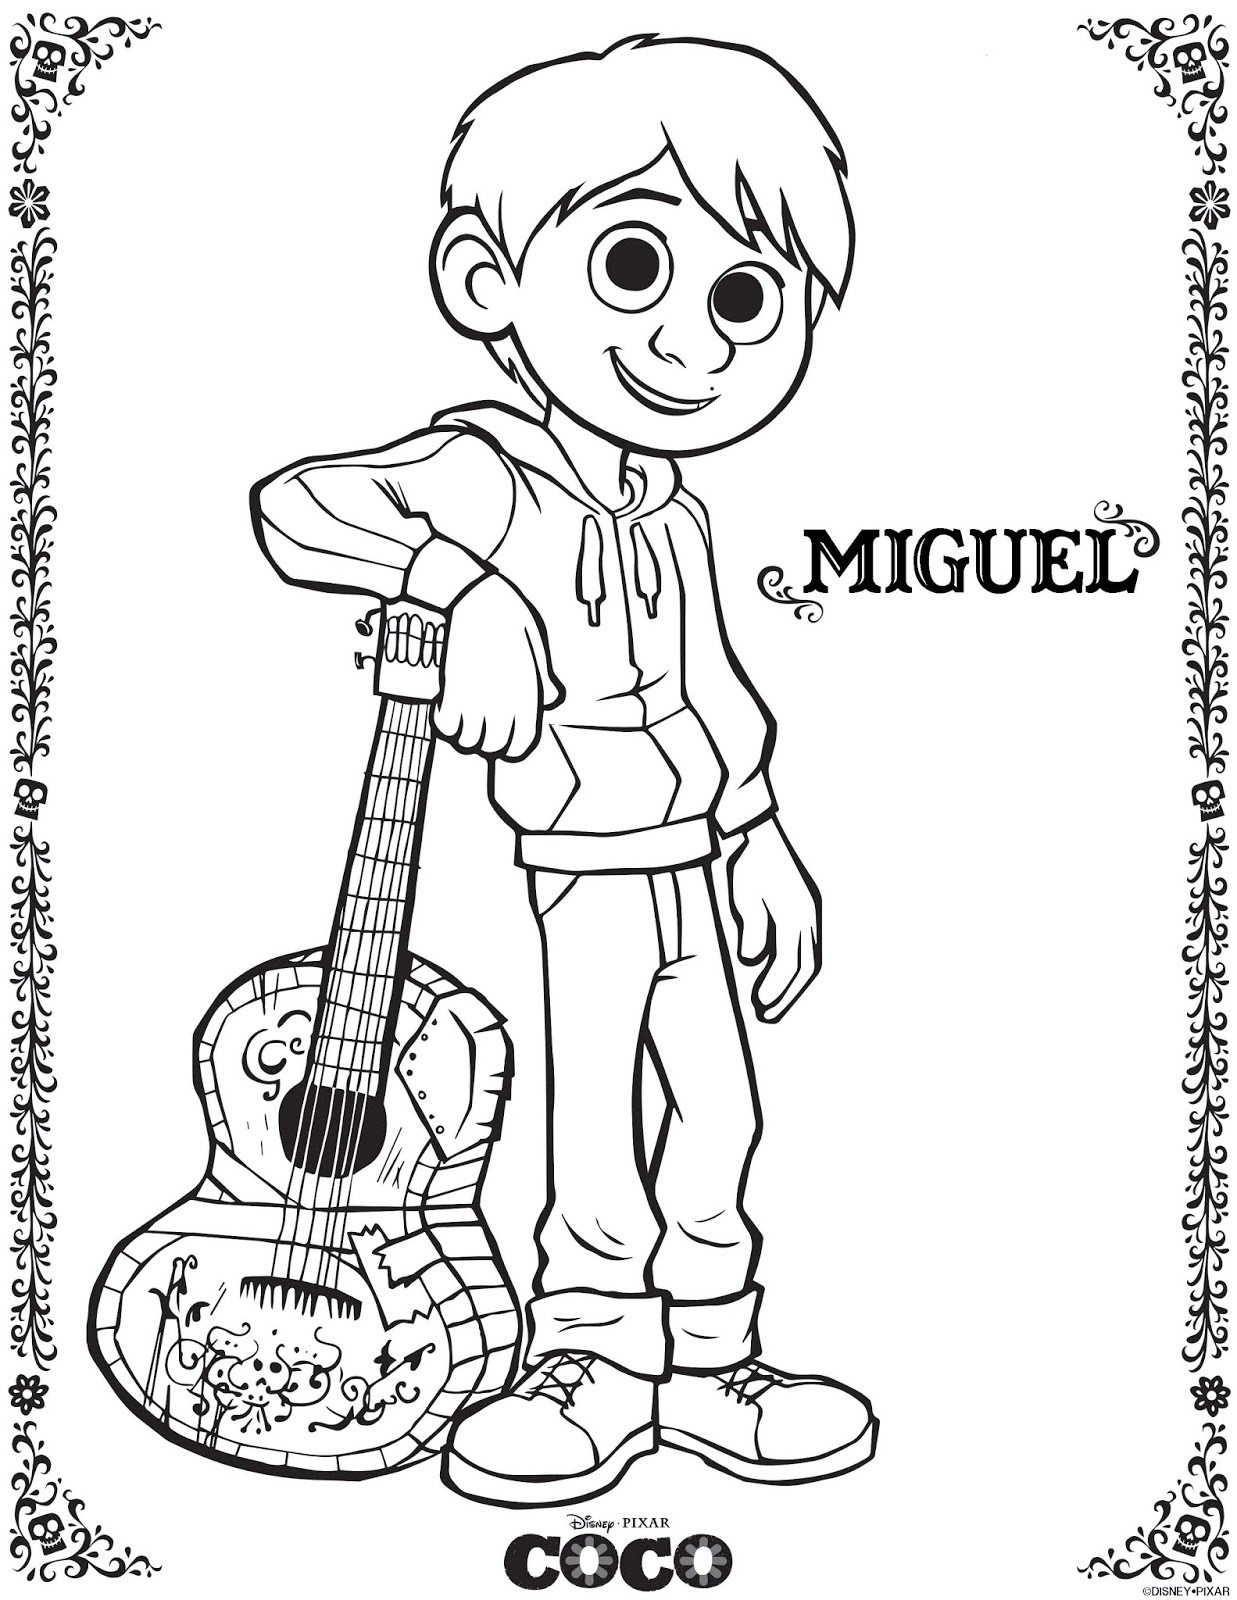 Coco Coloring Pages  Be Brave Keep Going Free Printable Coco Movie Coloring Pages